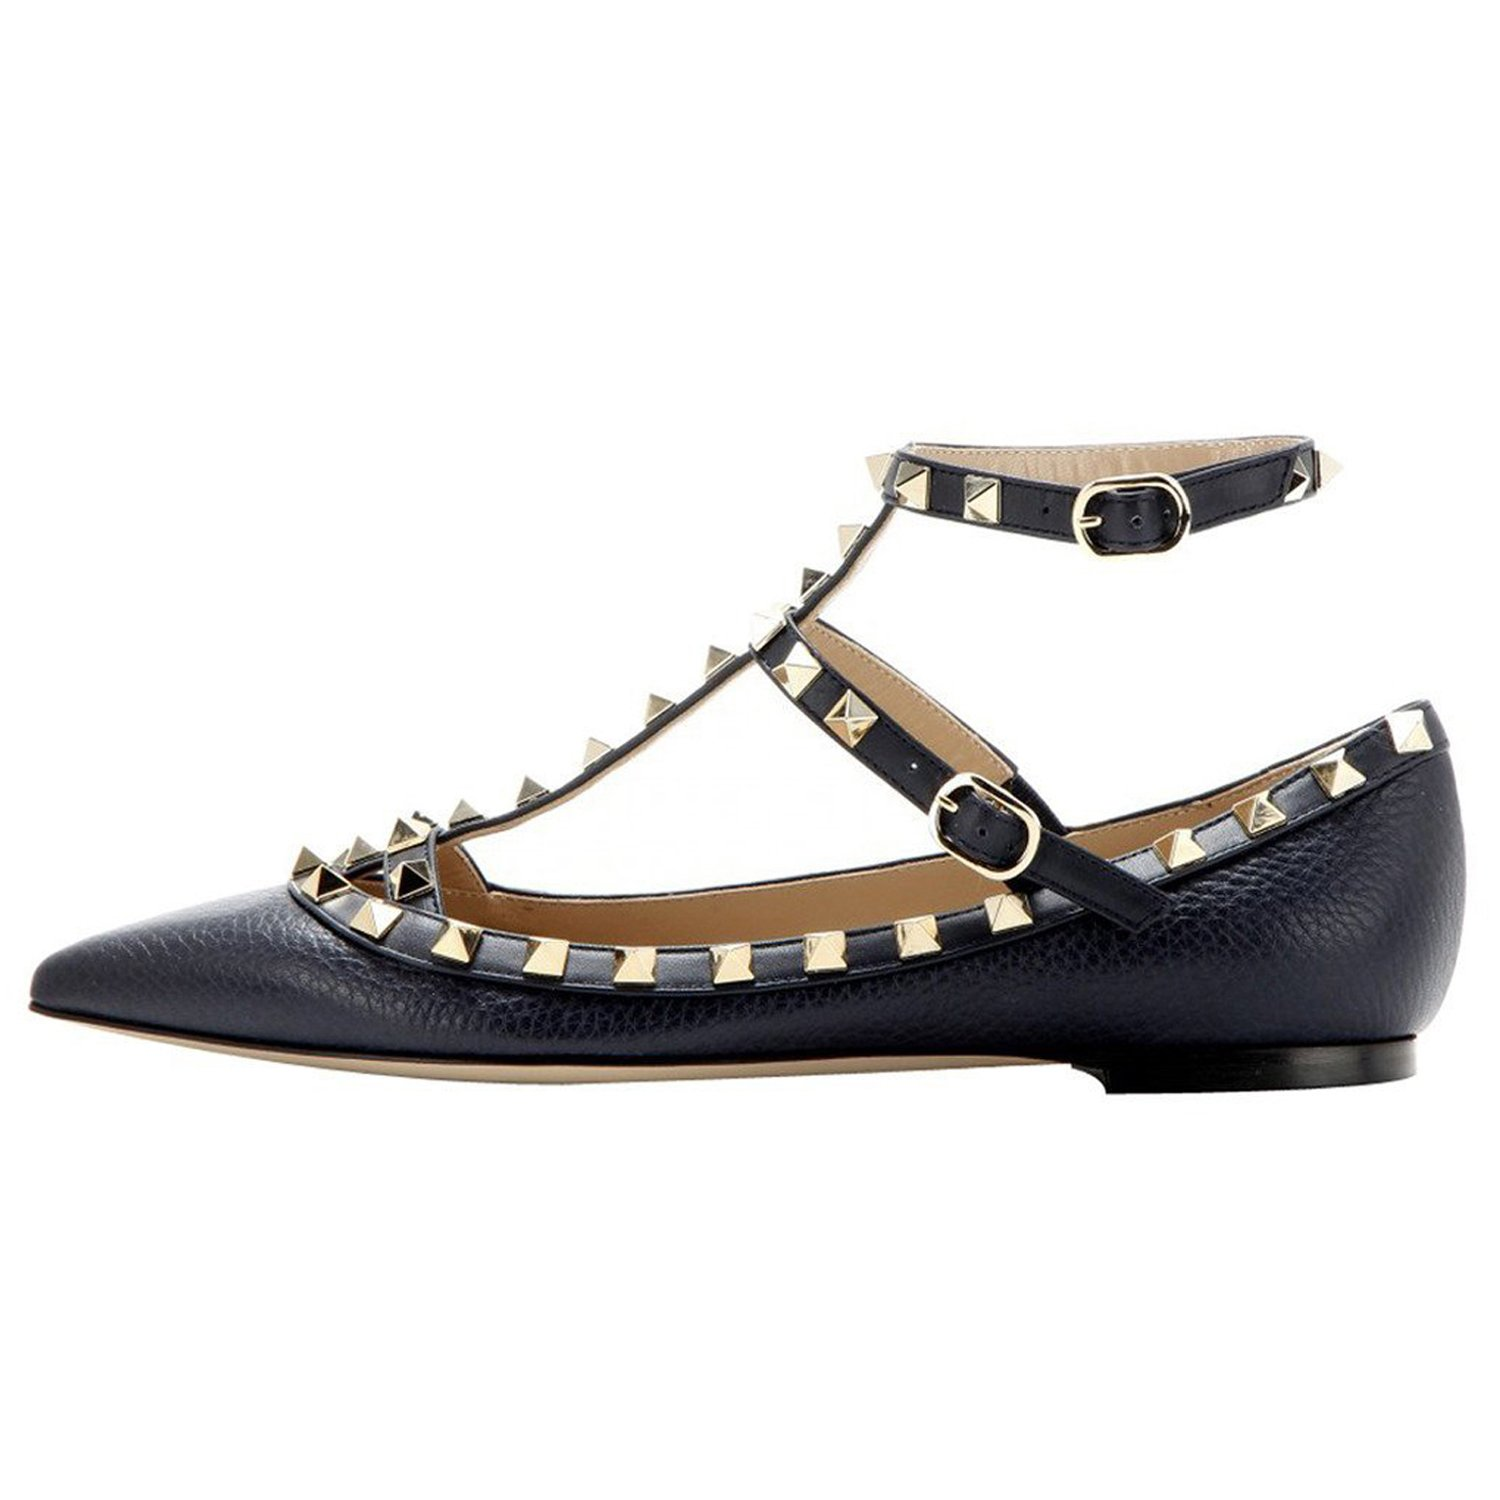 vocosi pointed women s ankle strap studded pointed vocosi toe pumps